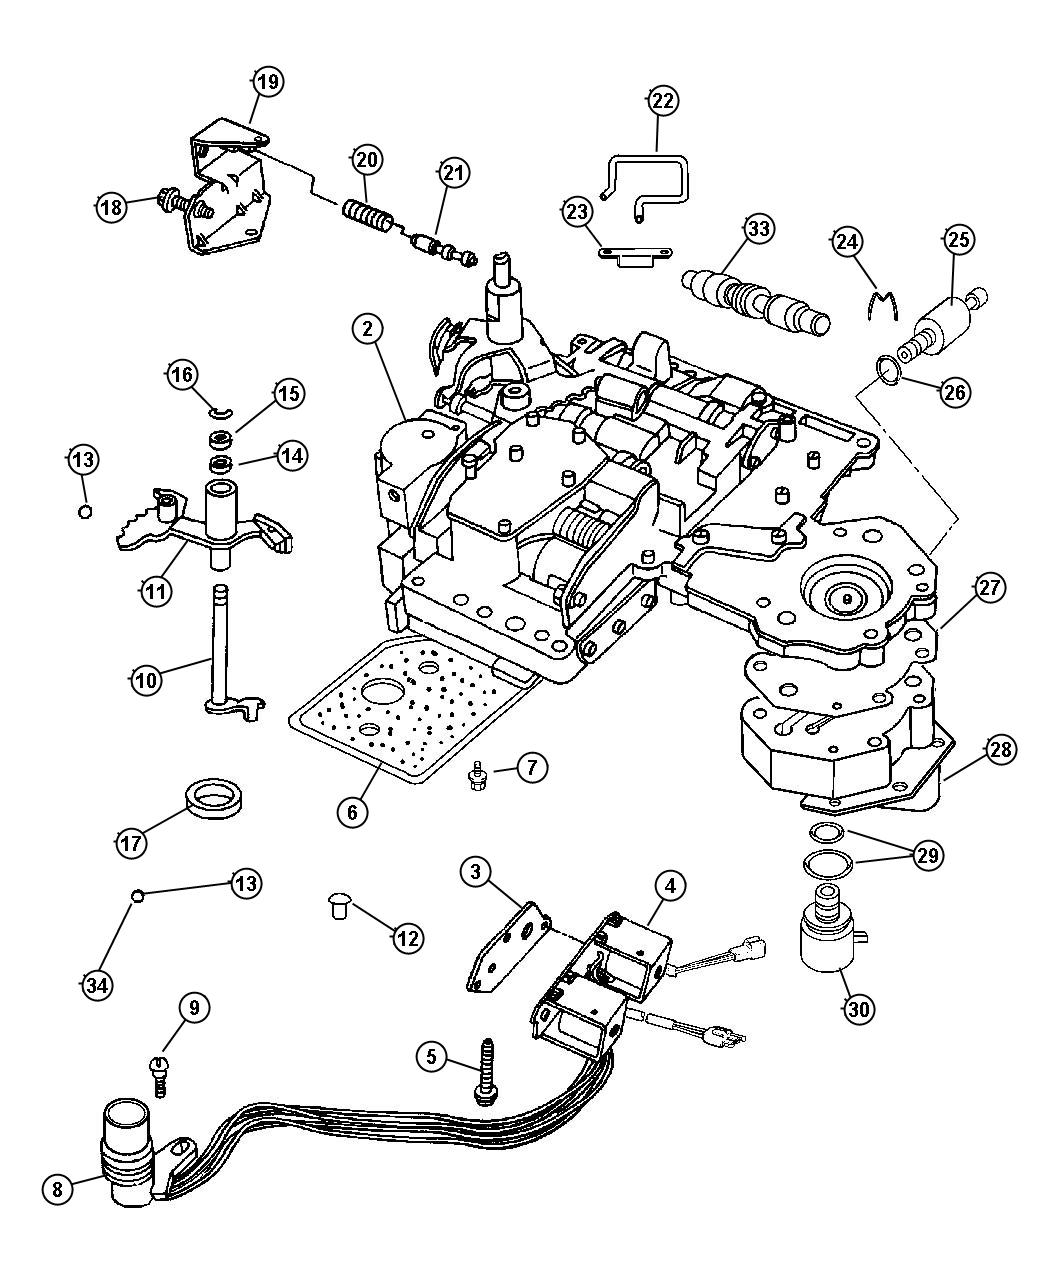 Service manual [How To Install 2006 Dodge Viper Valve Body